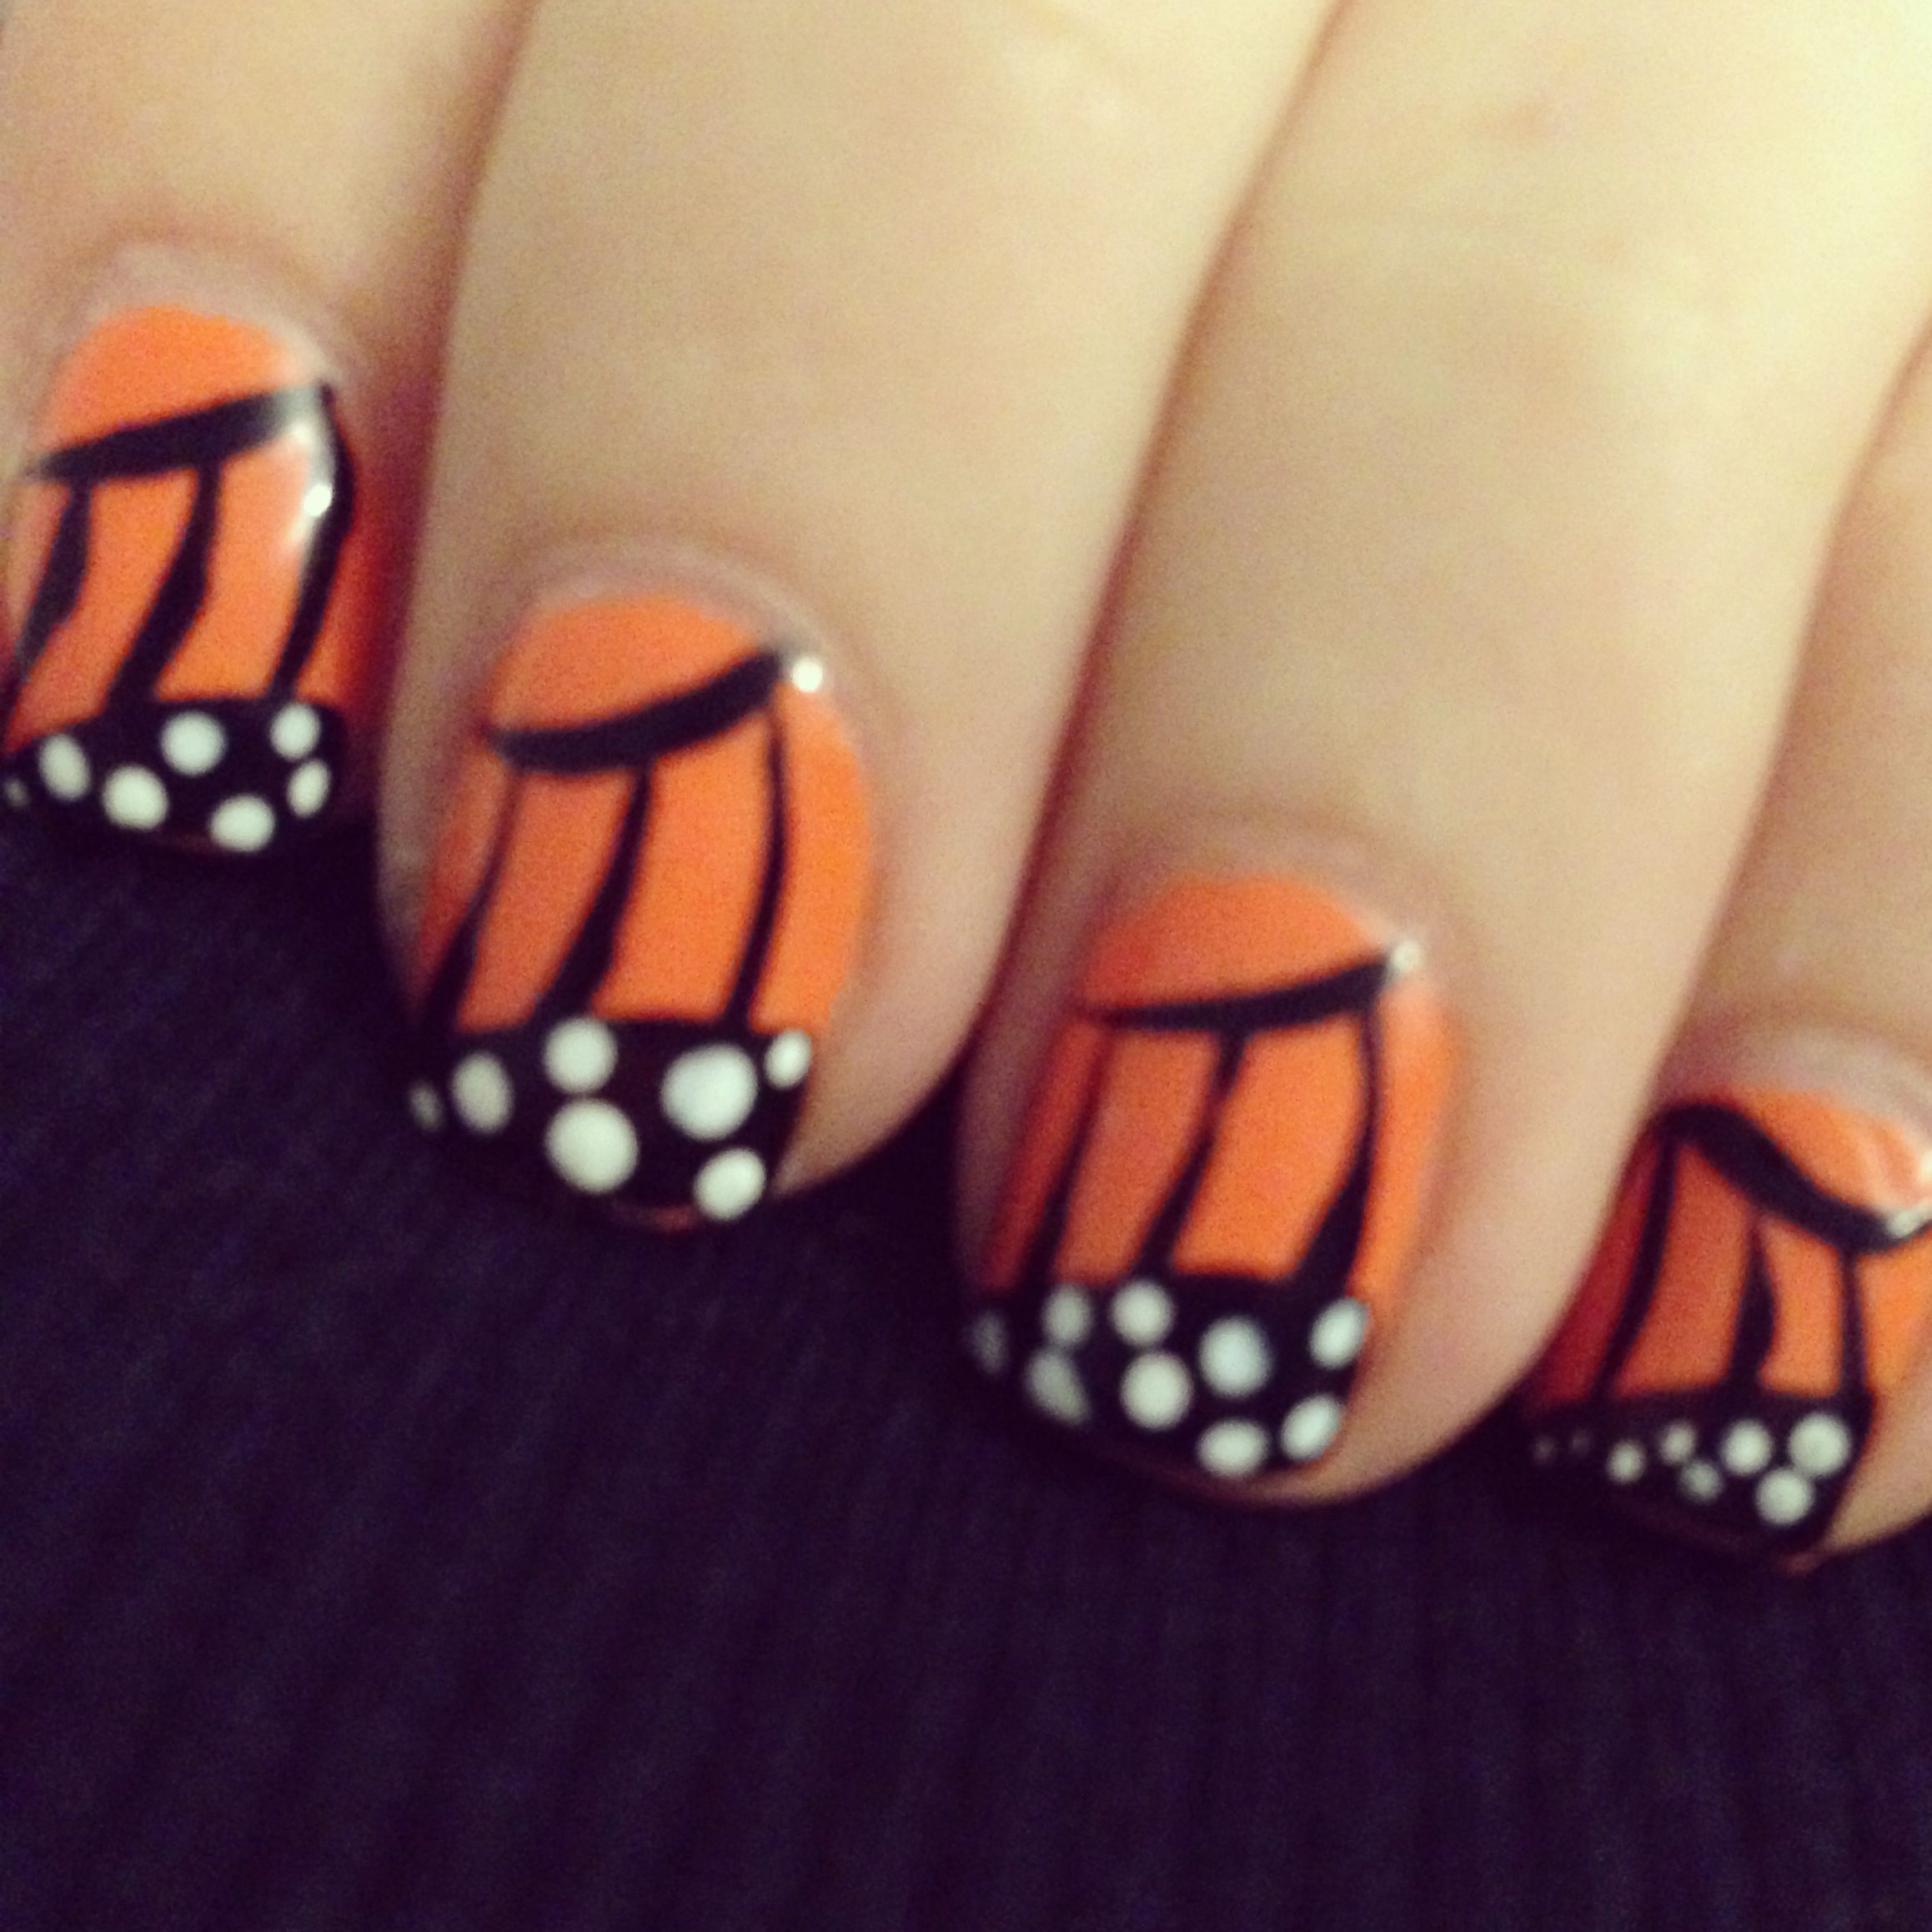 Monarch butterfly fall nail art Instagram: @zyranail | Nails ...